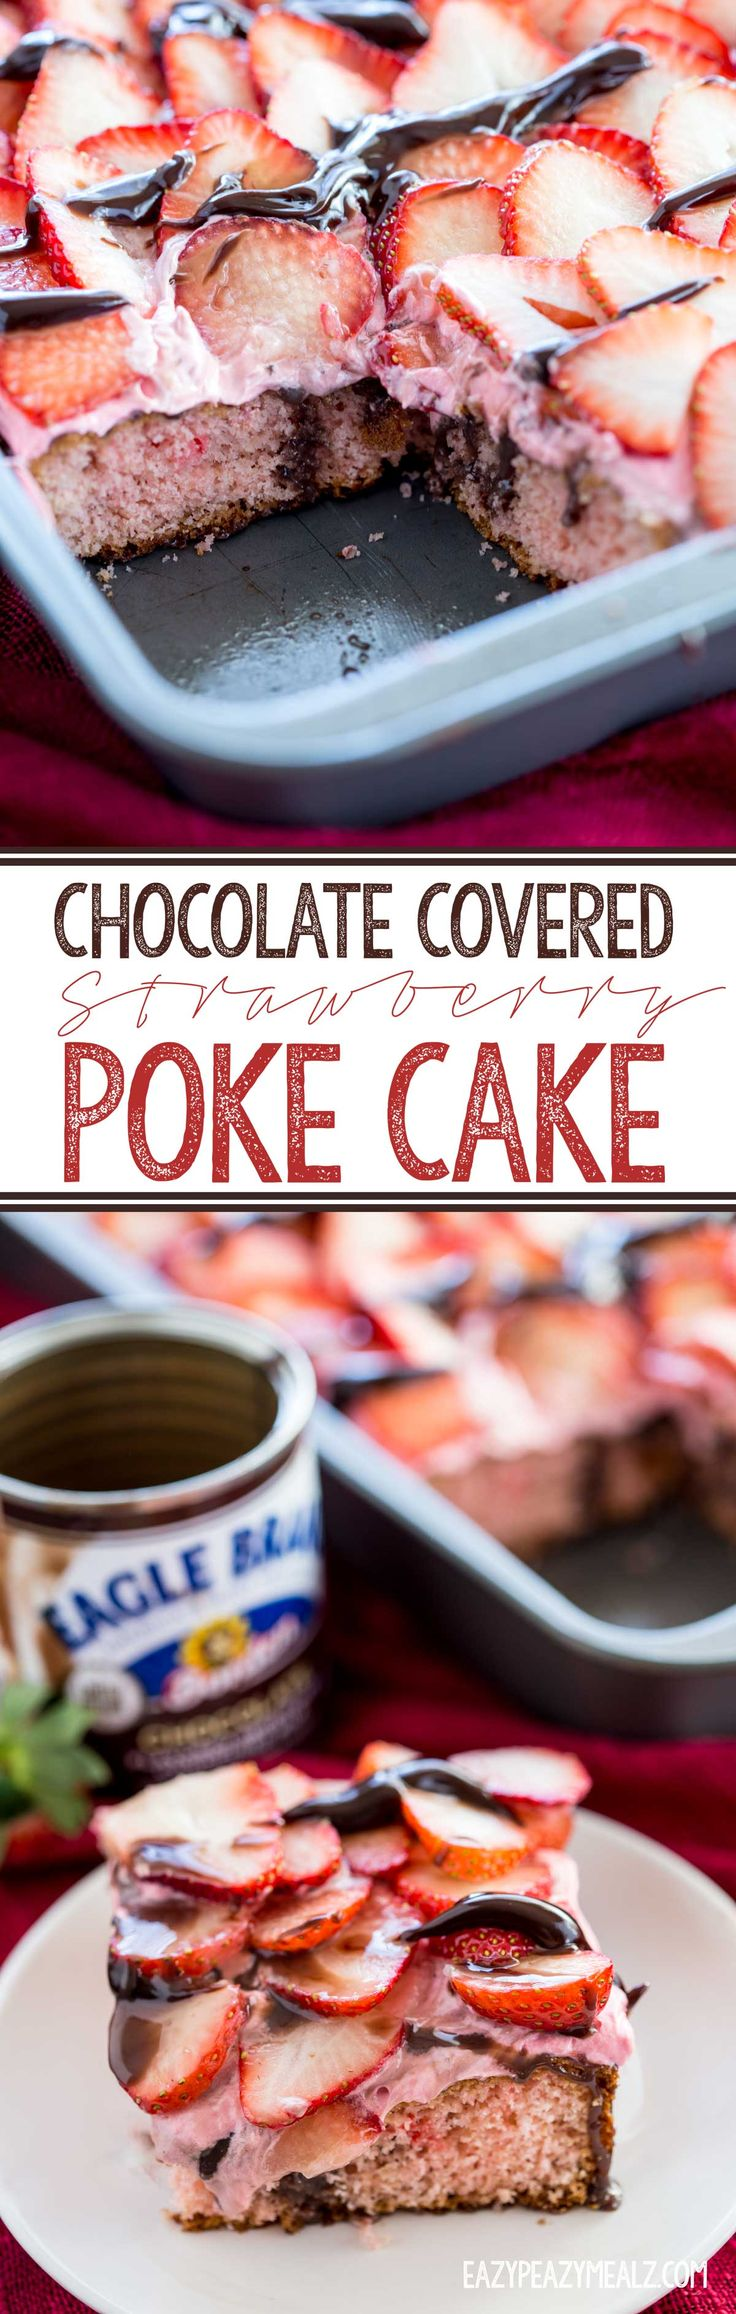 Chocolate Covered Strawberry Poke Cake using a cake mix, chocolate sweetened condensed milk, strawberries, and more. Easy and oh so delicious. #SweetenYourSeason #IC #ad  - Eazy Peazy Mealz